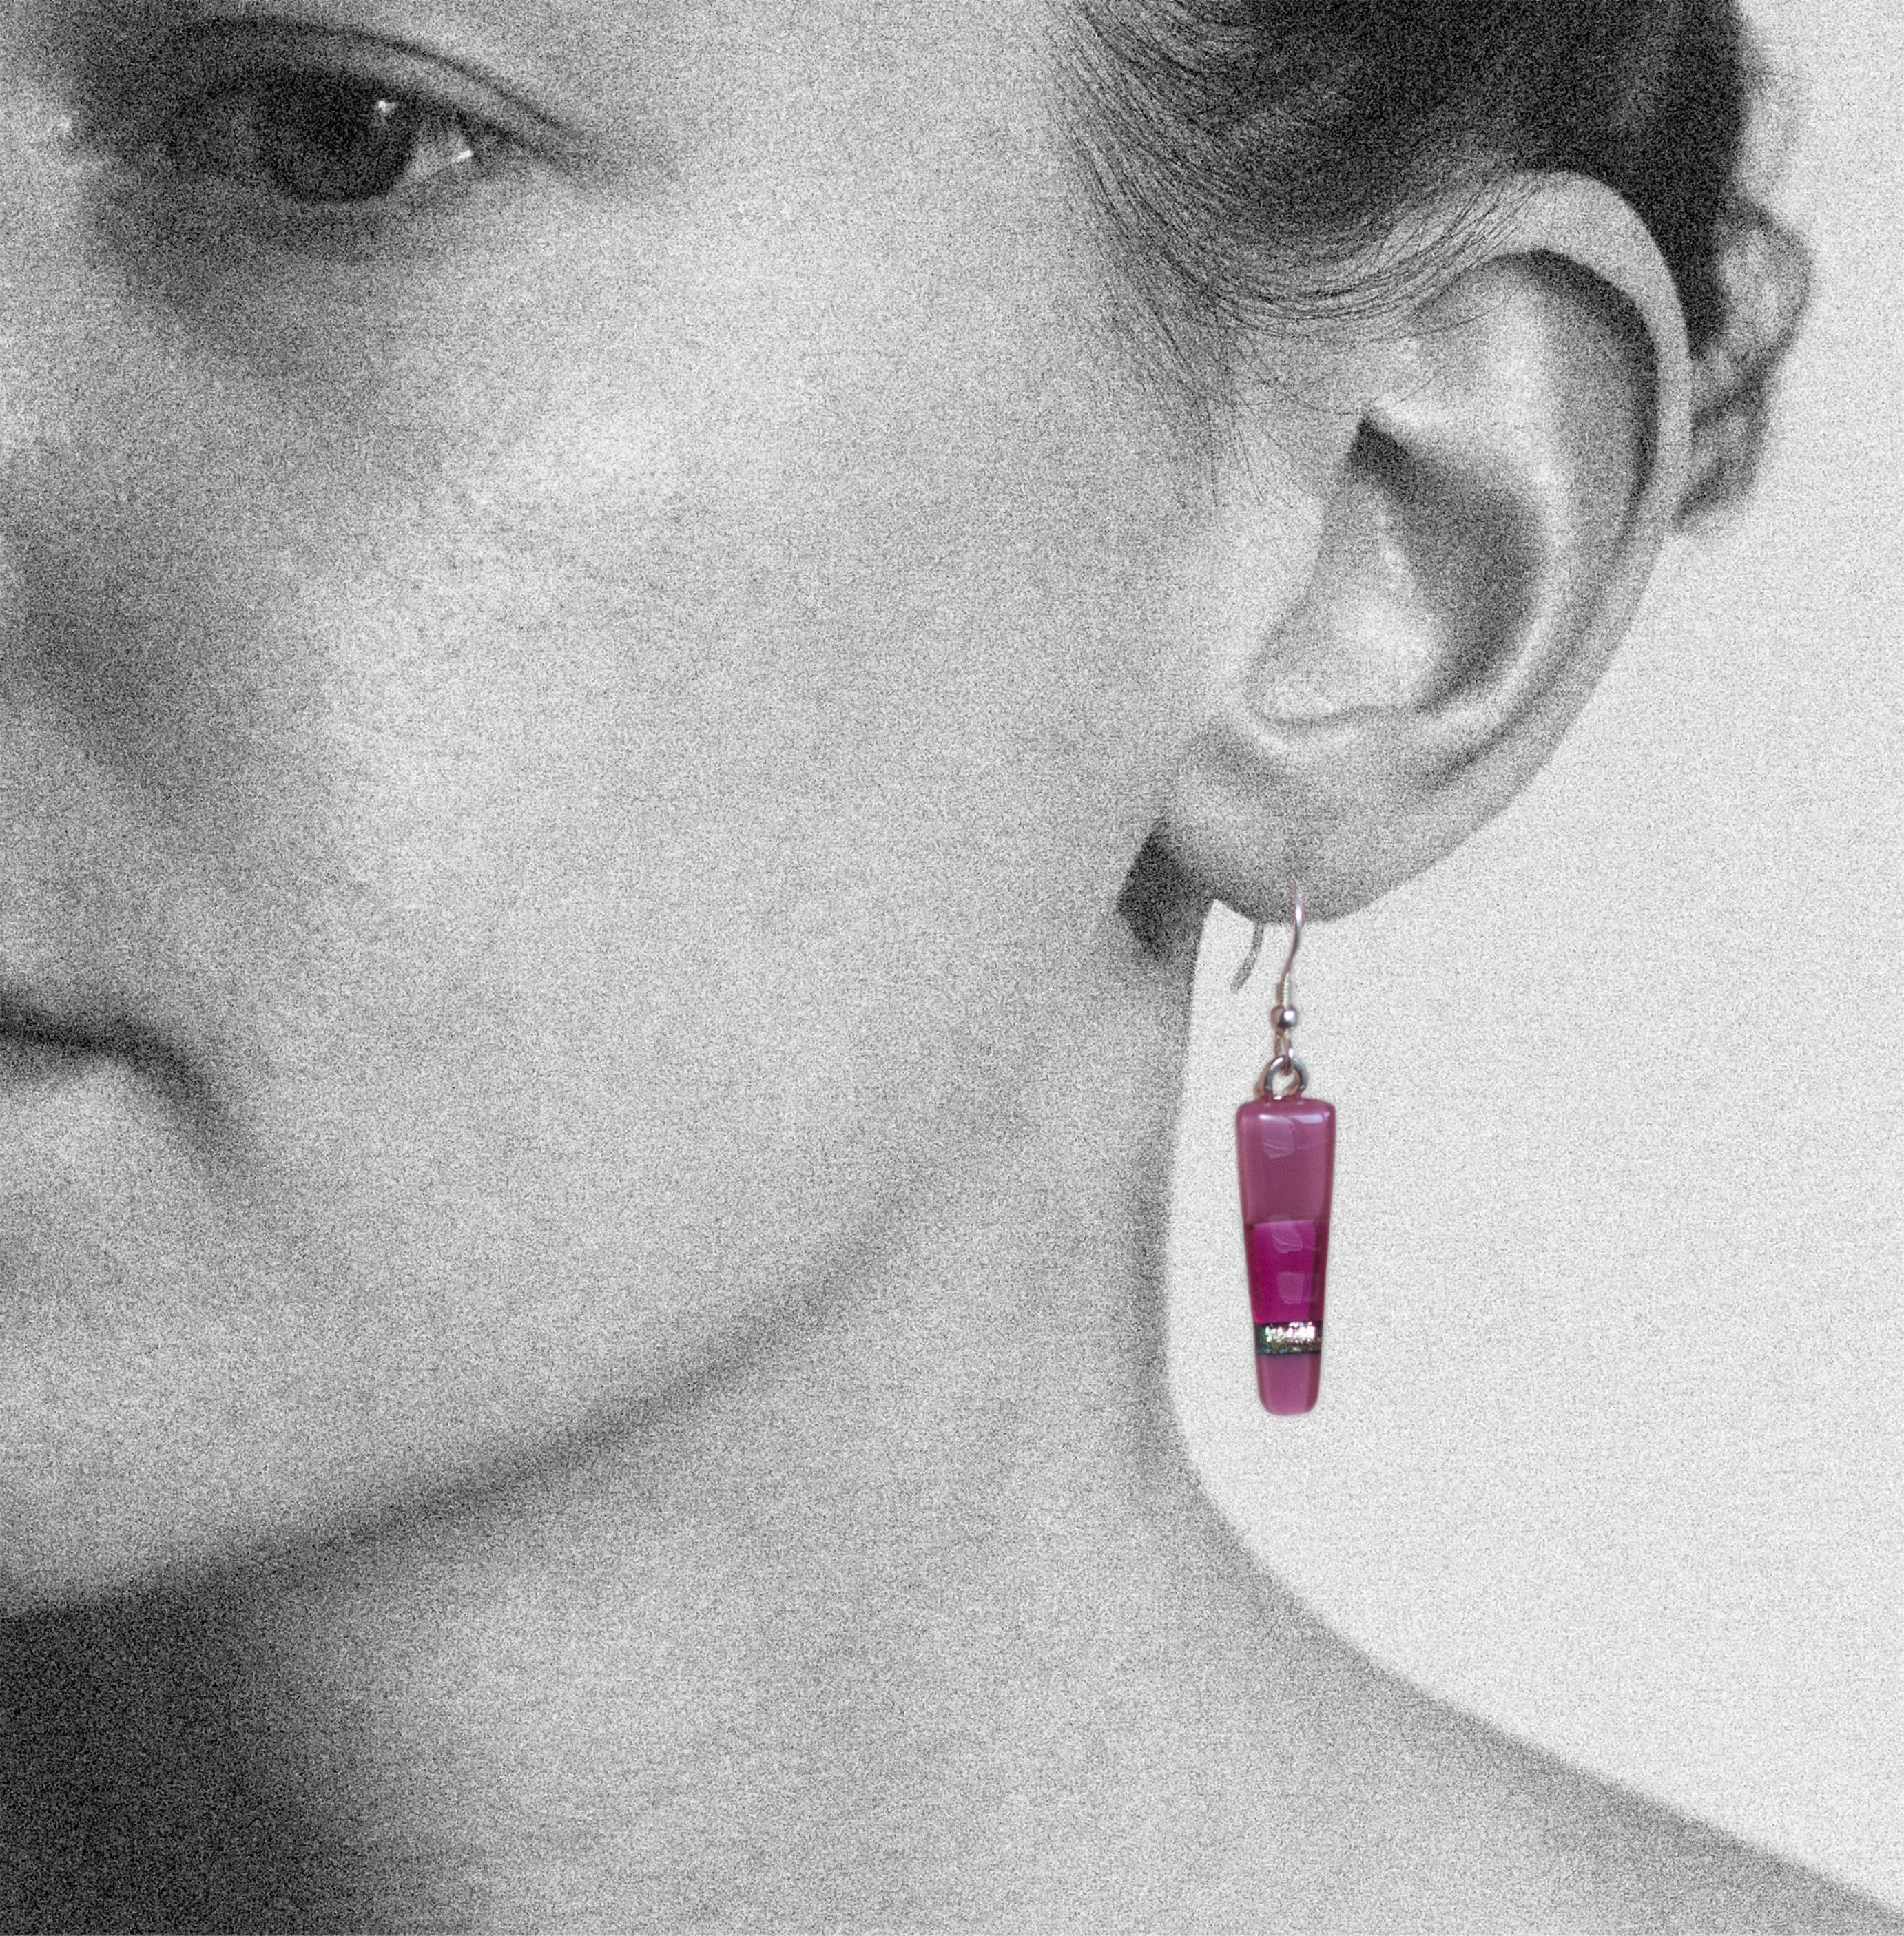 Dichroic glass jewellery, glass drop earrings, tapered pink earrings with transparent, opaque and dichroic glass, art glass earrings handmade in Shropshire, sterling silver hooks